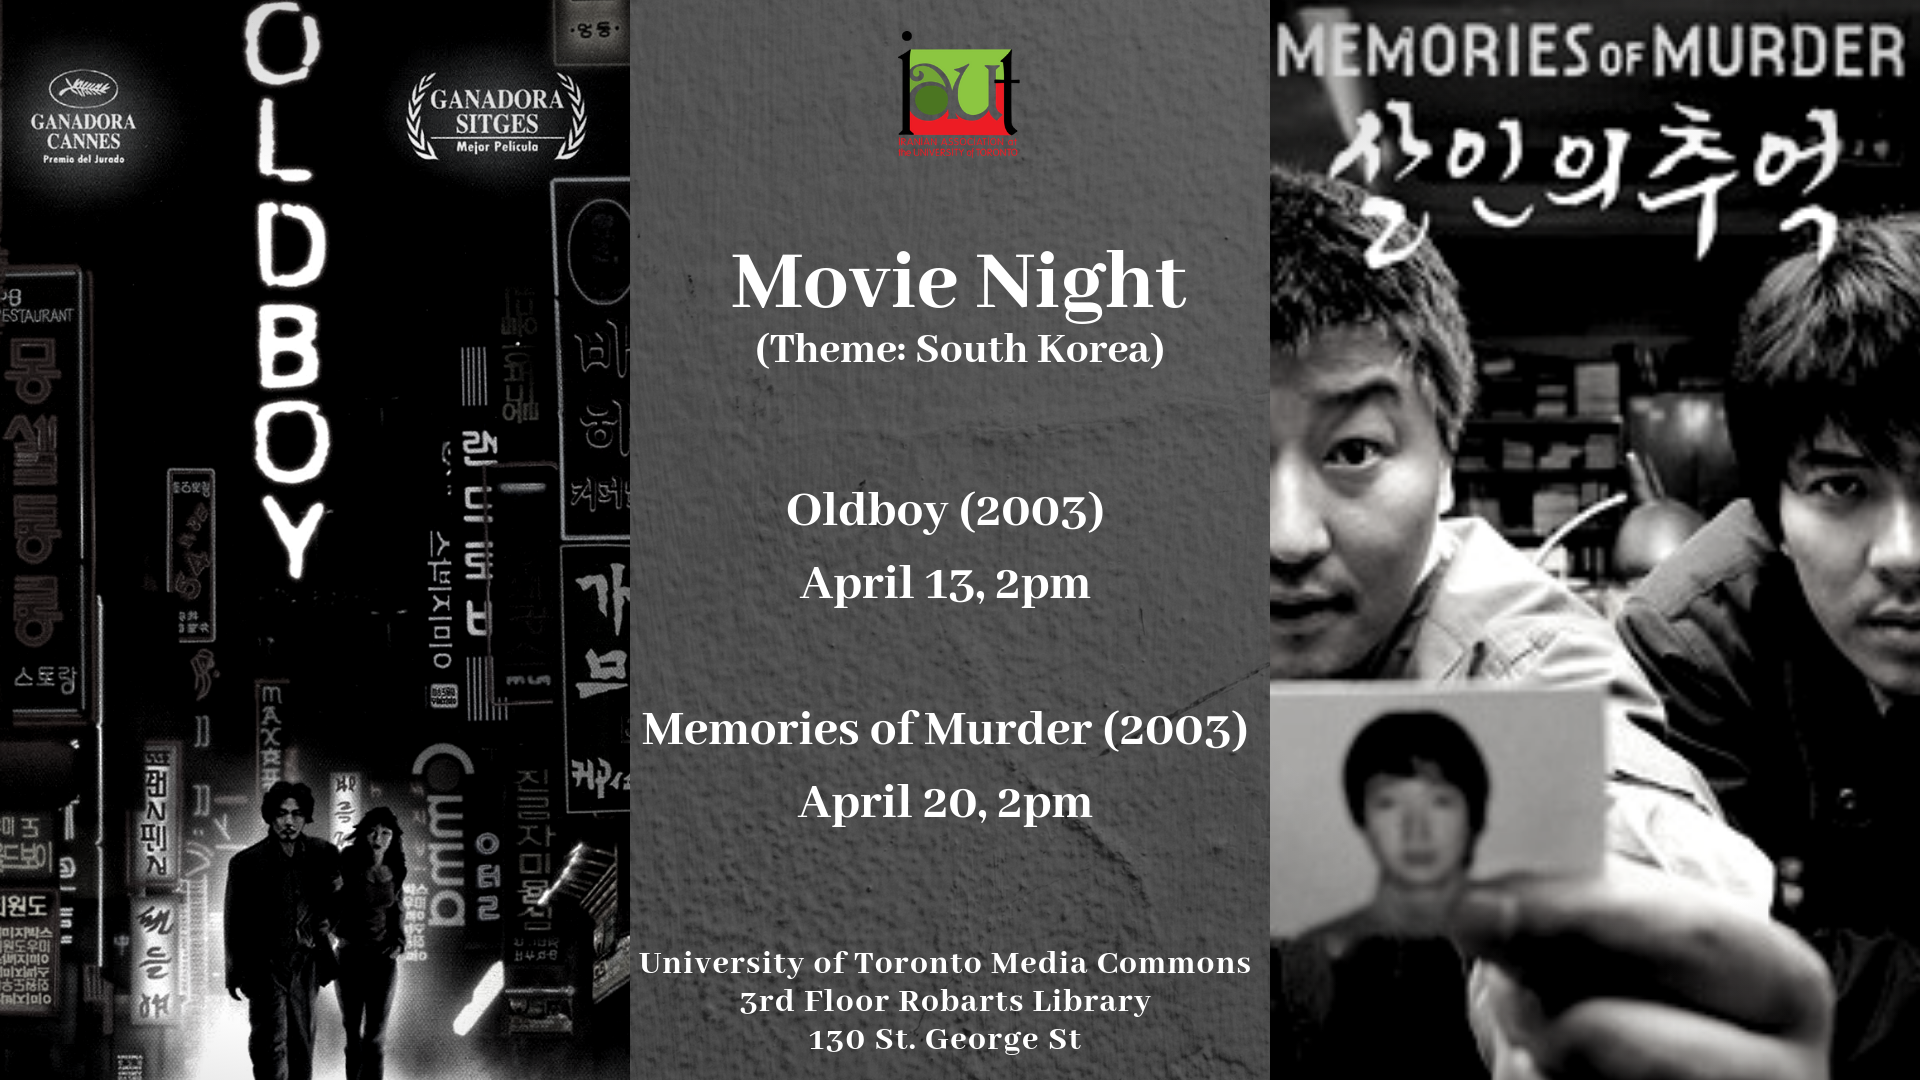 IAUT Movie Night – Theme: South Korea